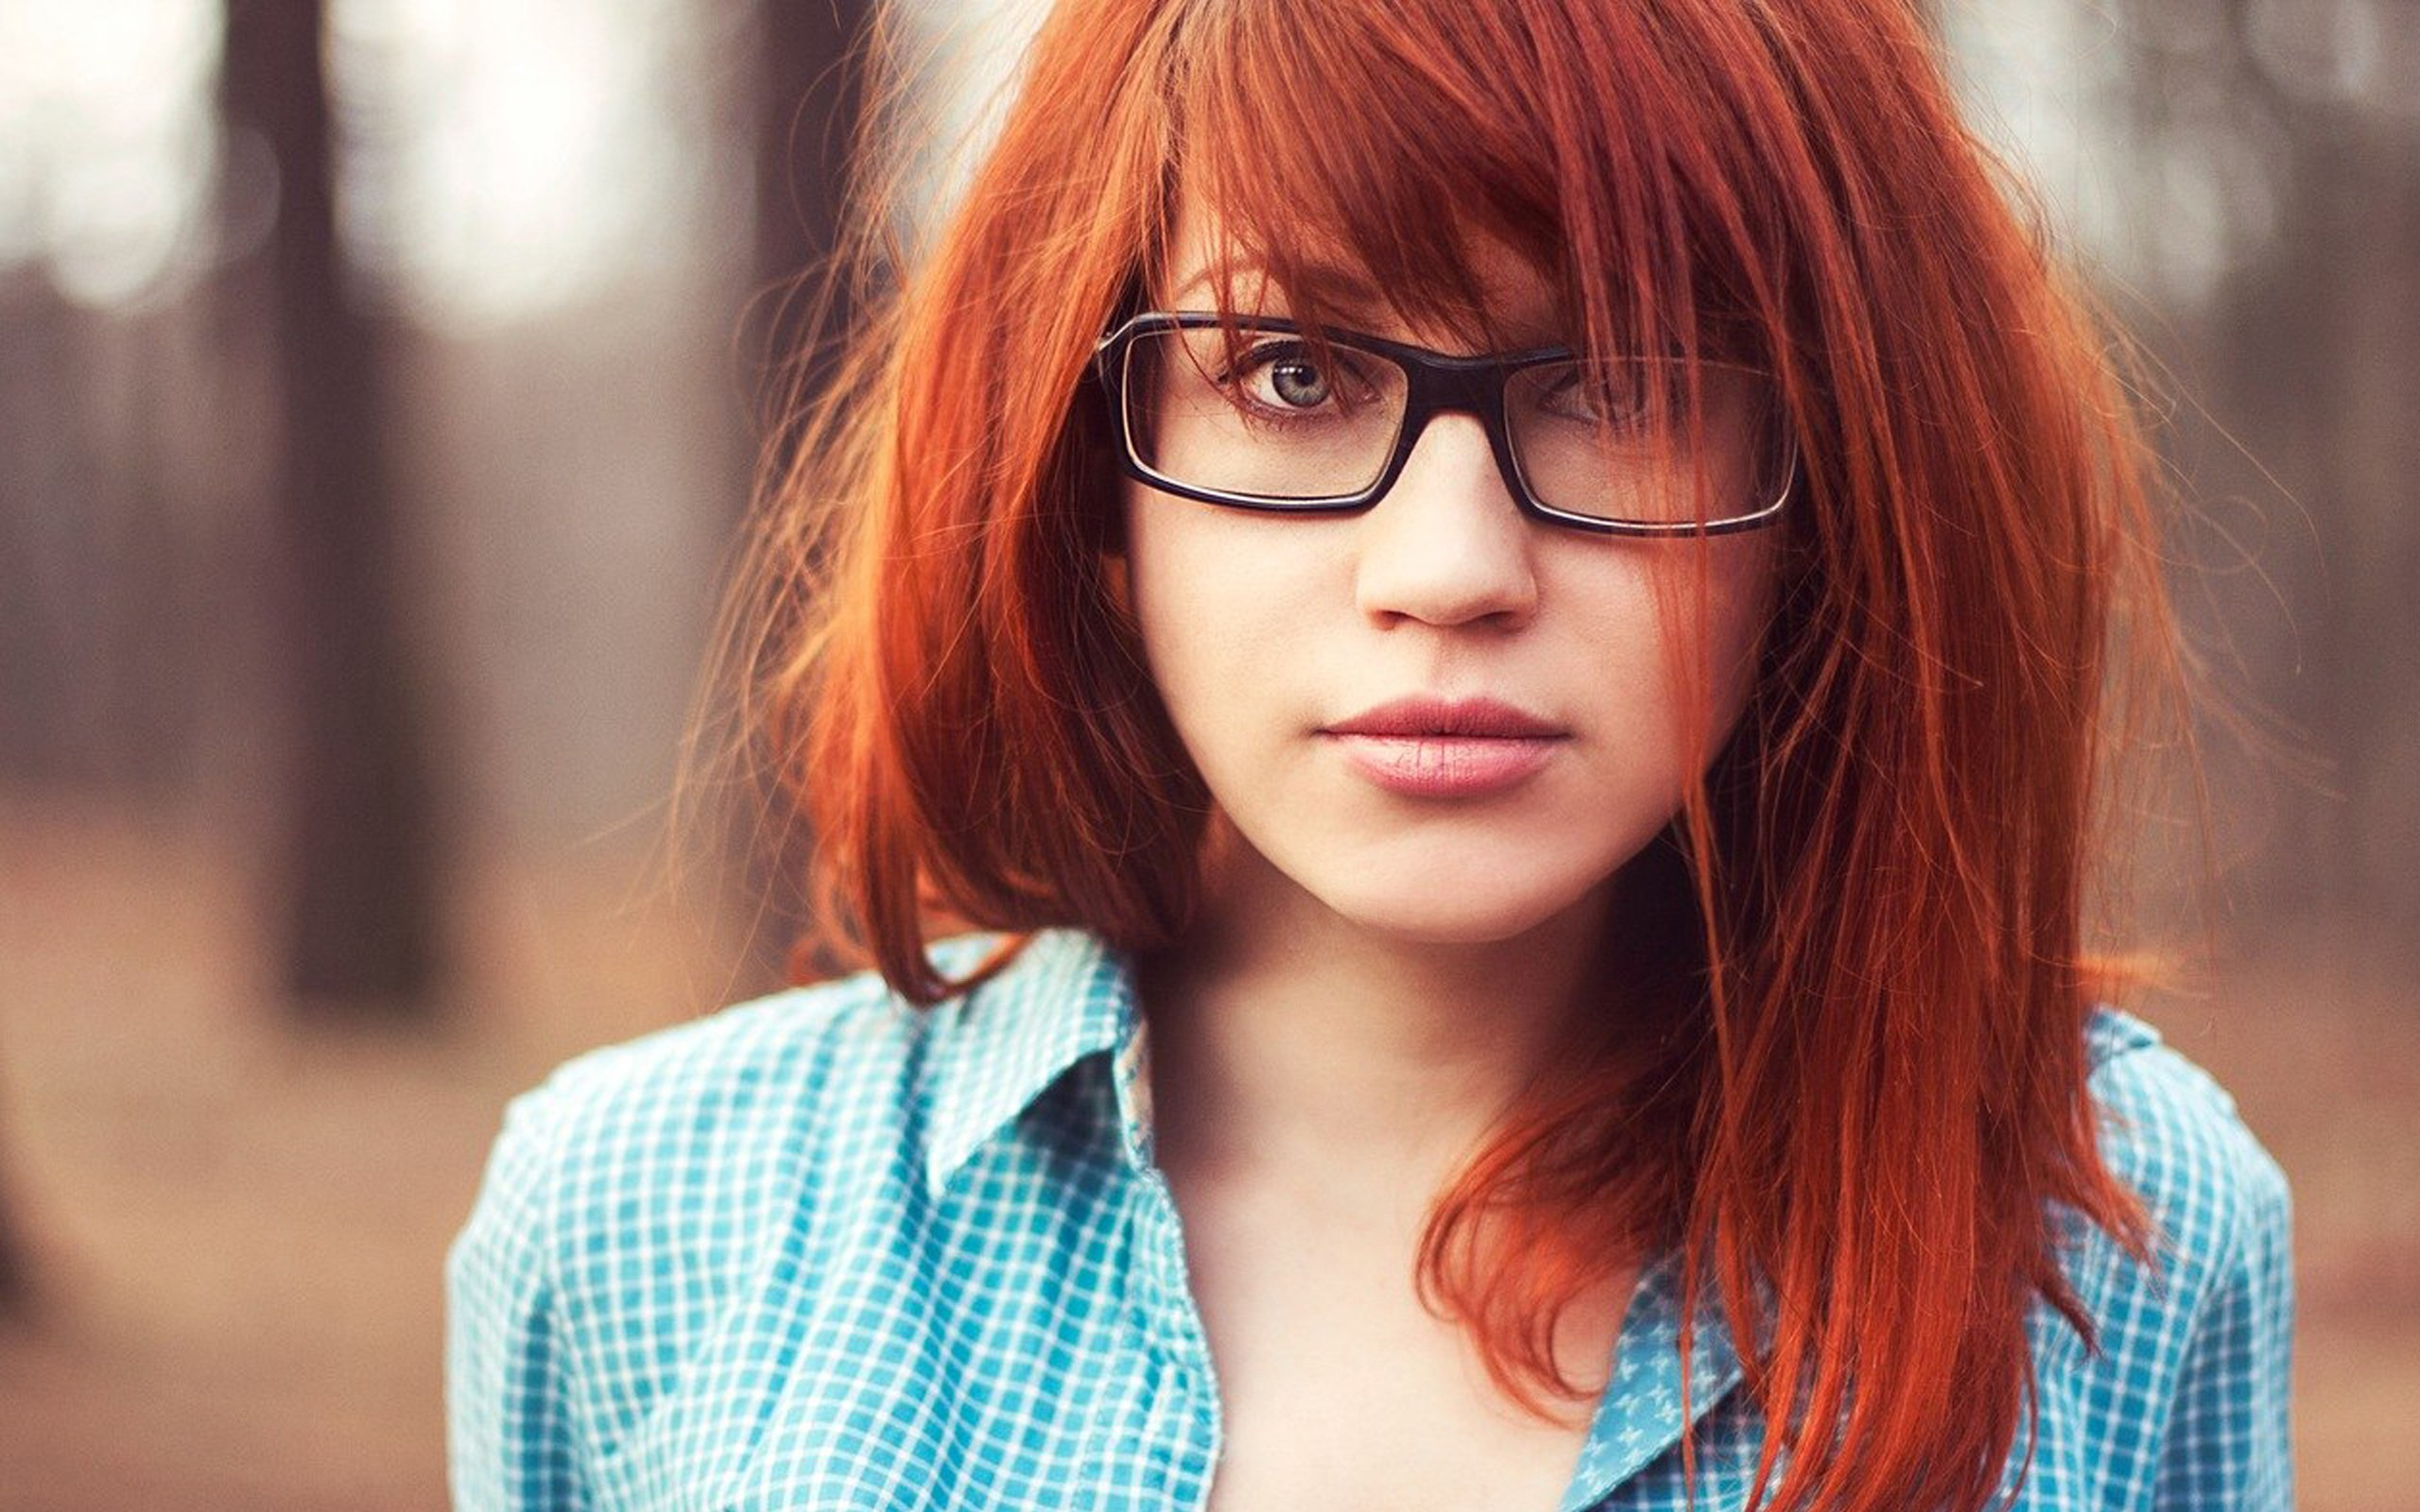 redhead lady wearing glasses is getting penetrated with passion  108208